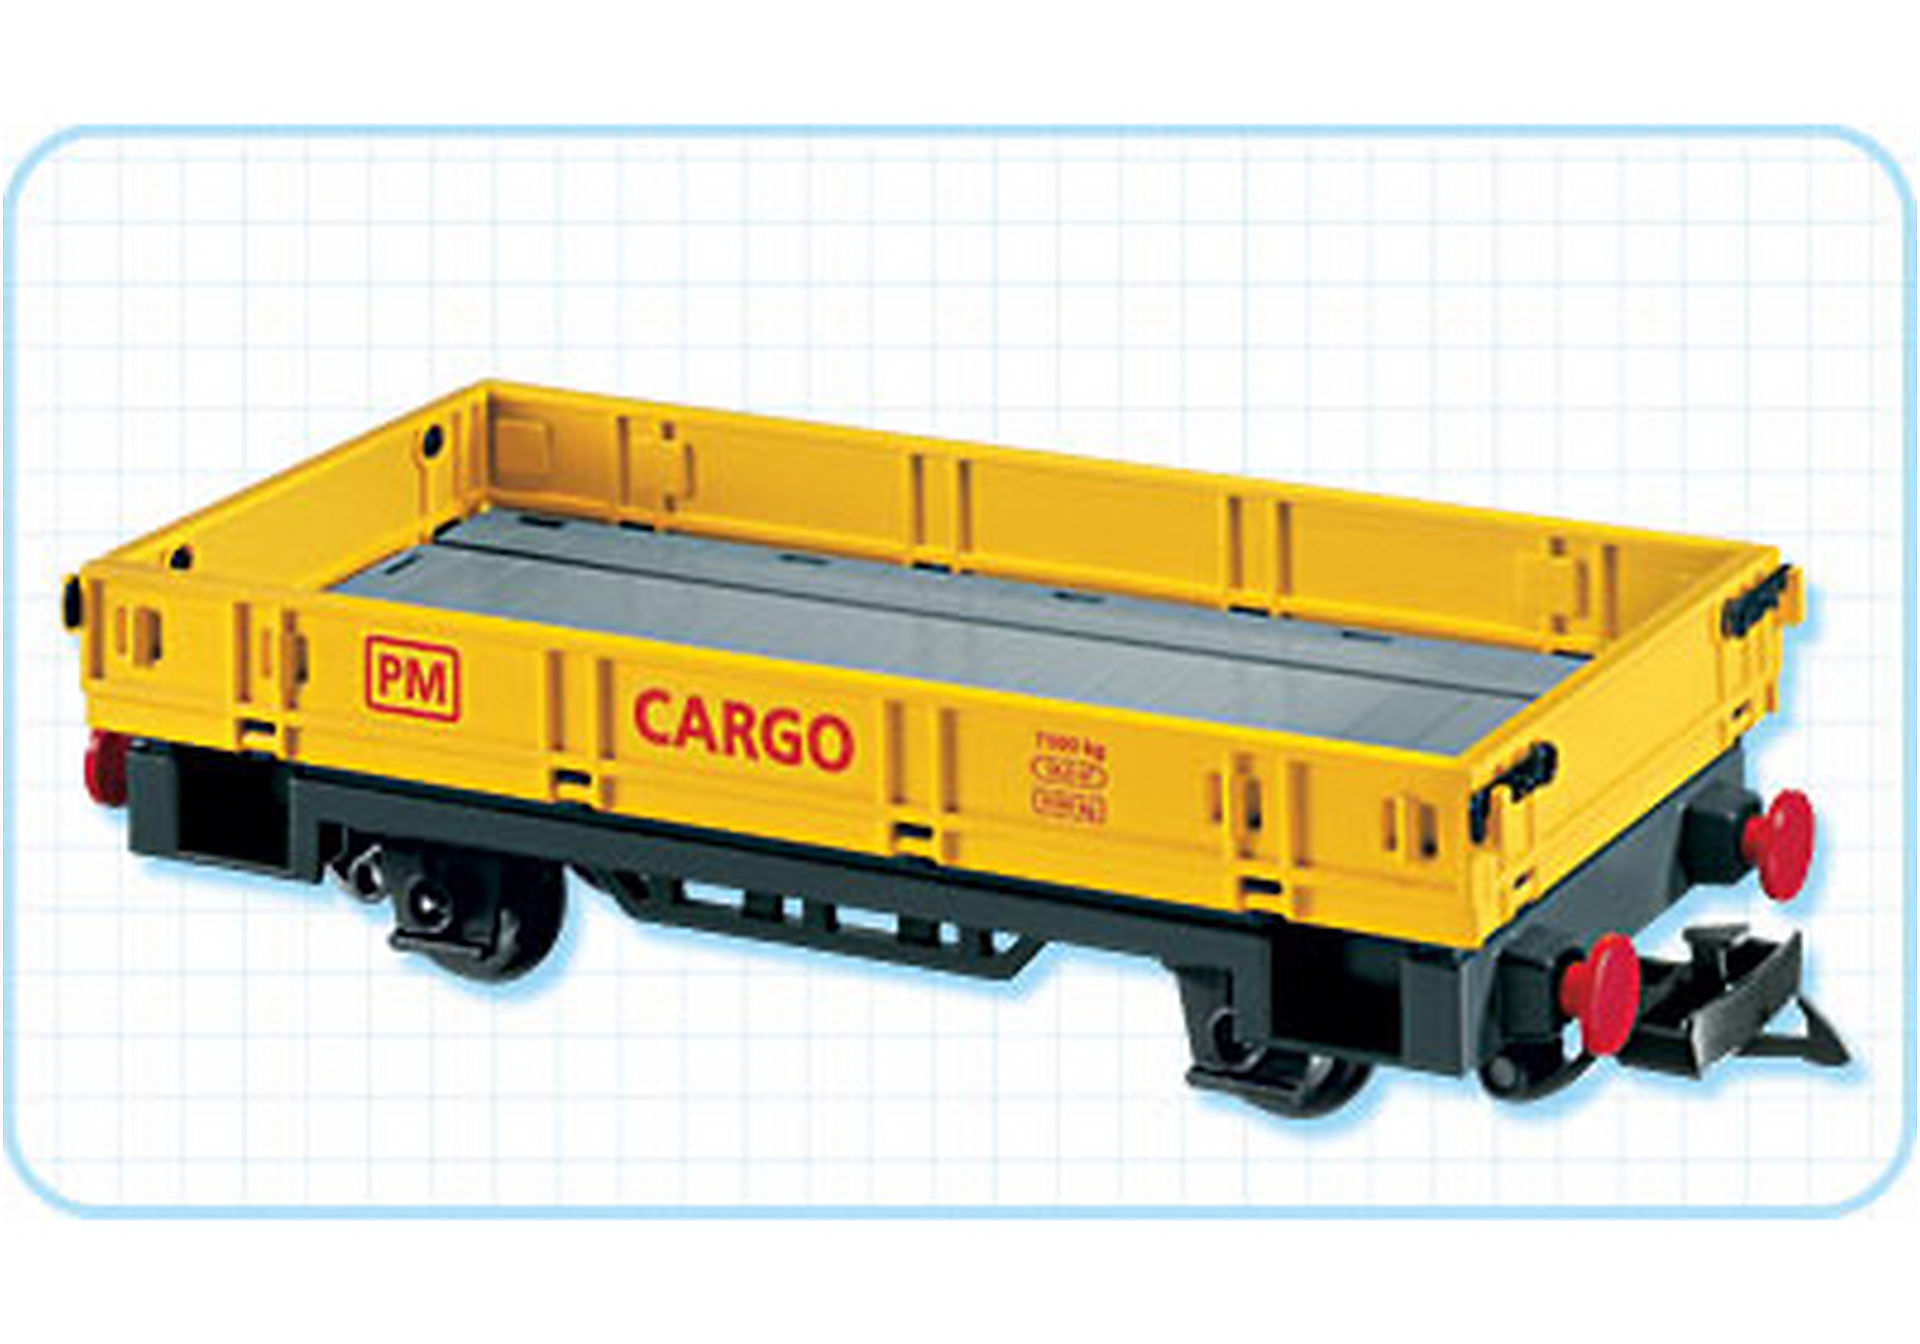 4126-A Niederbordwaggon zoom image2